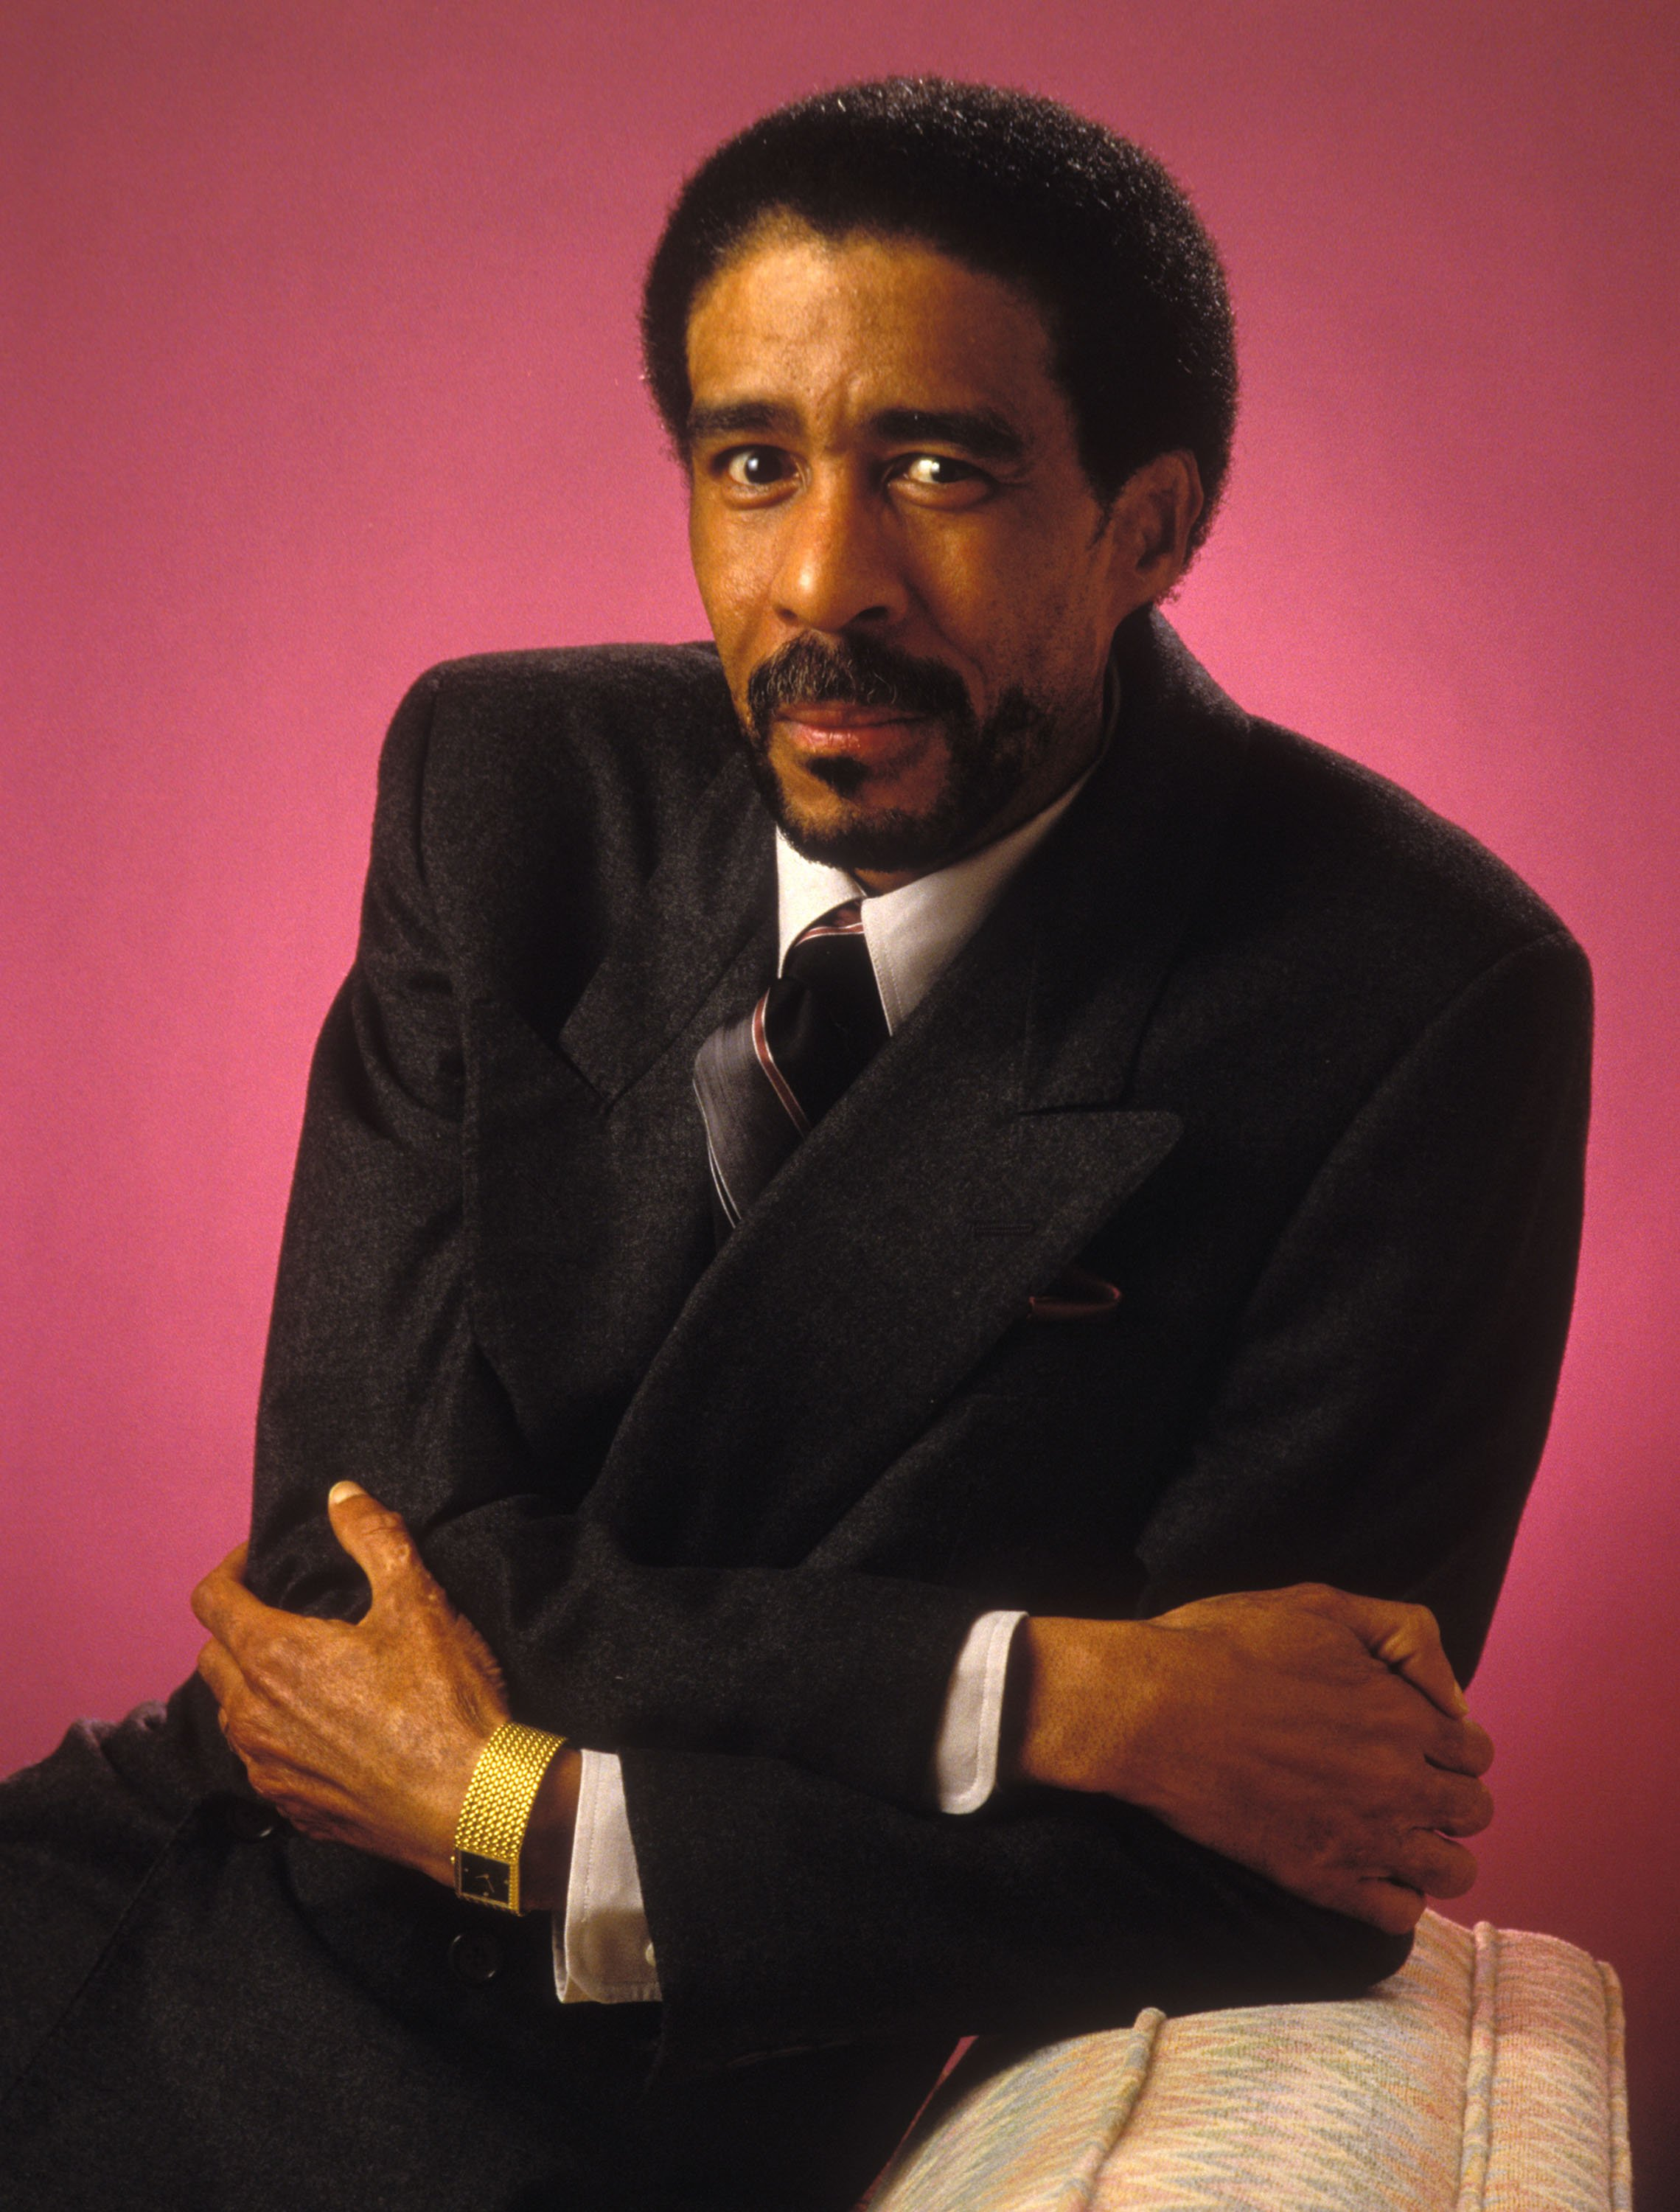 Comedian Richard Pryor at Beverly Hills Hotel in Beverly Hills, California, United States. | Source: Getty Images